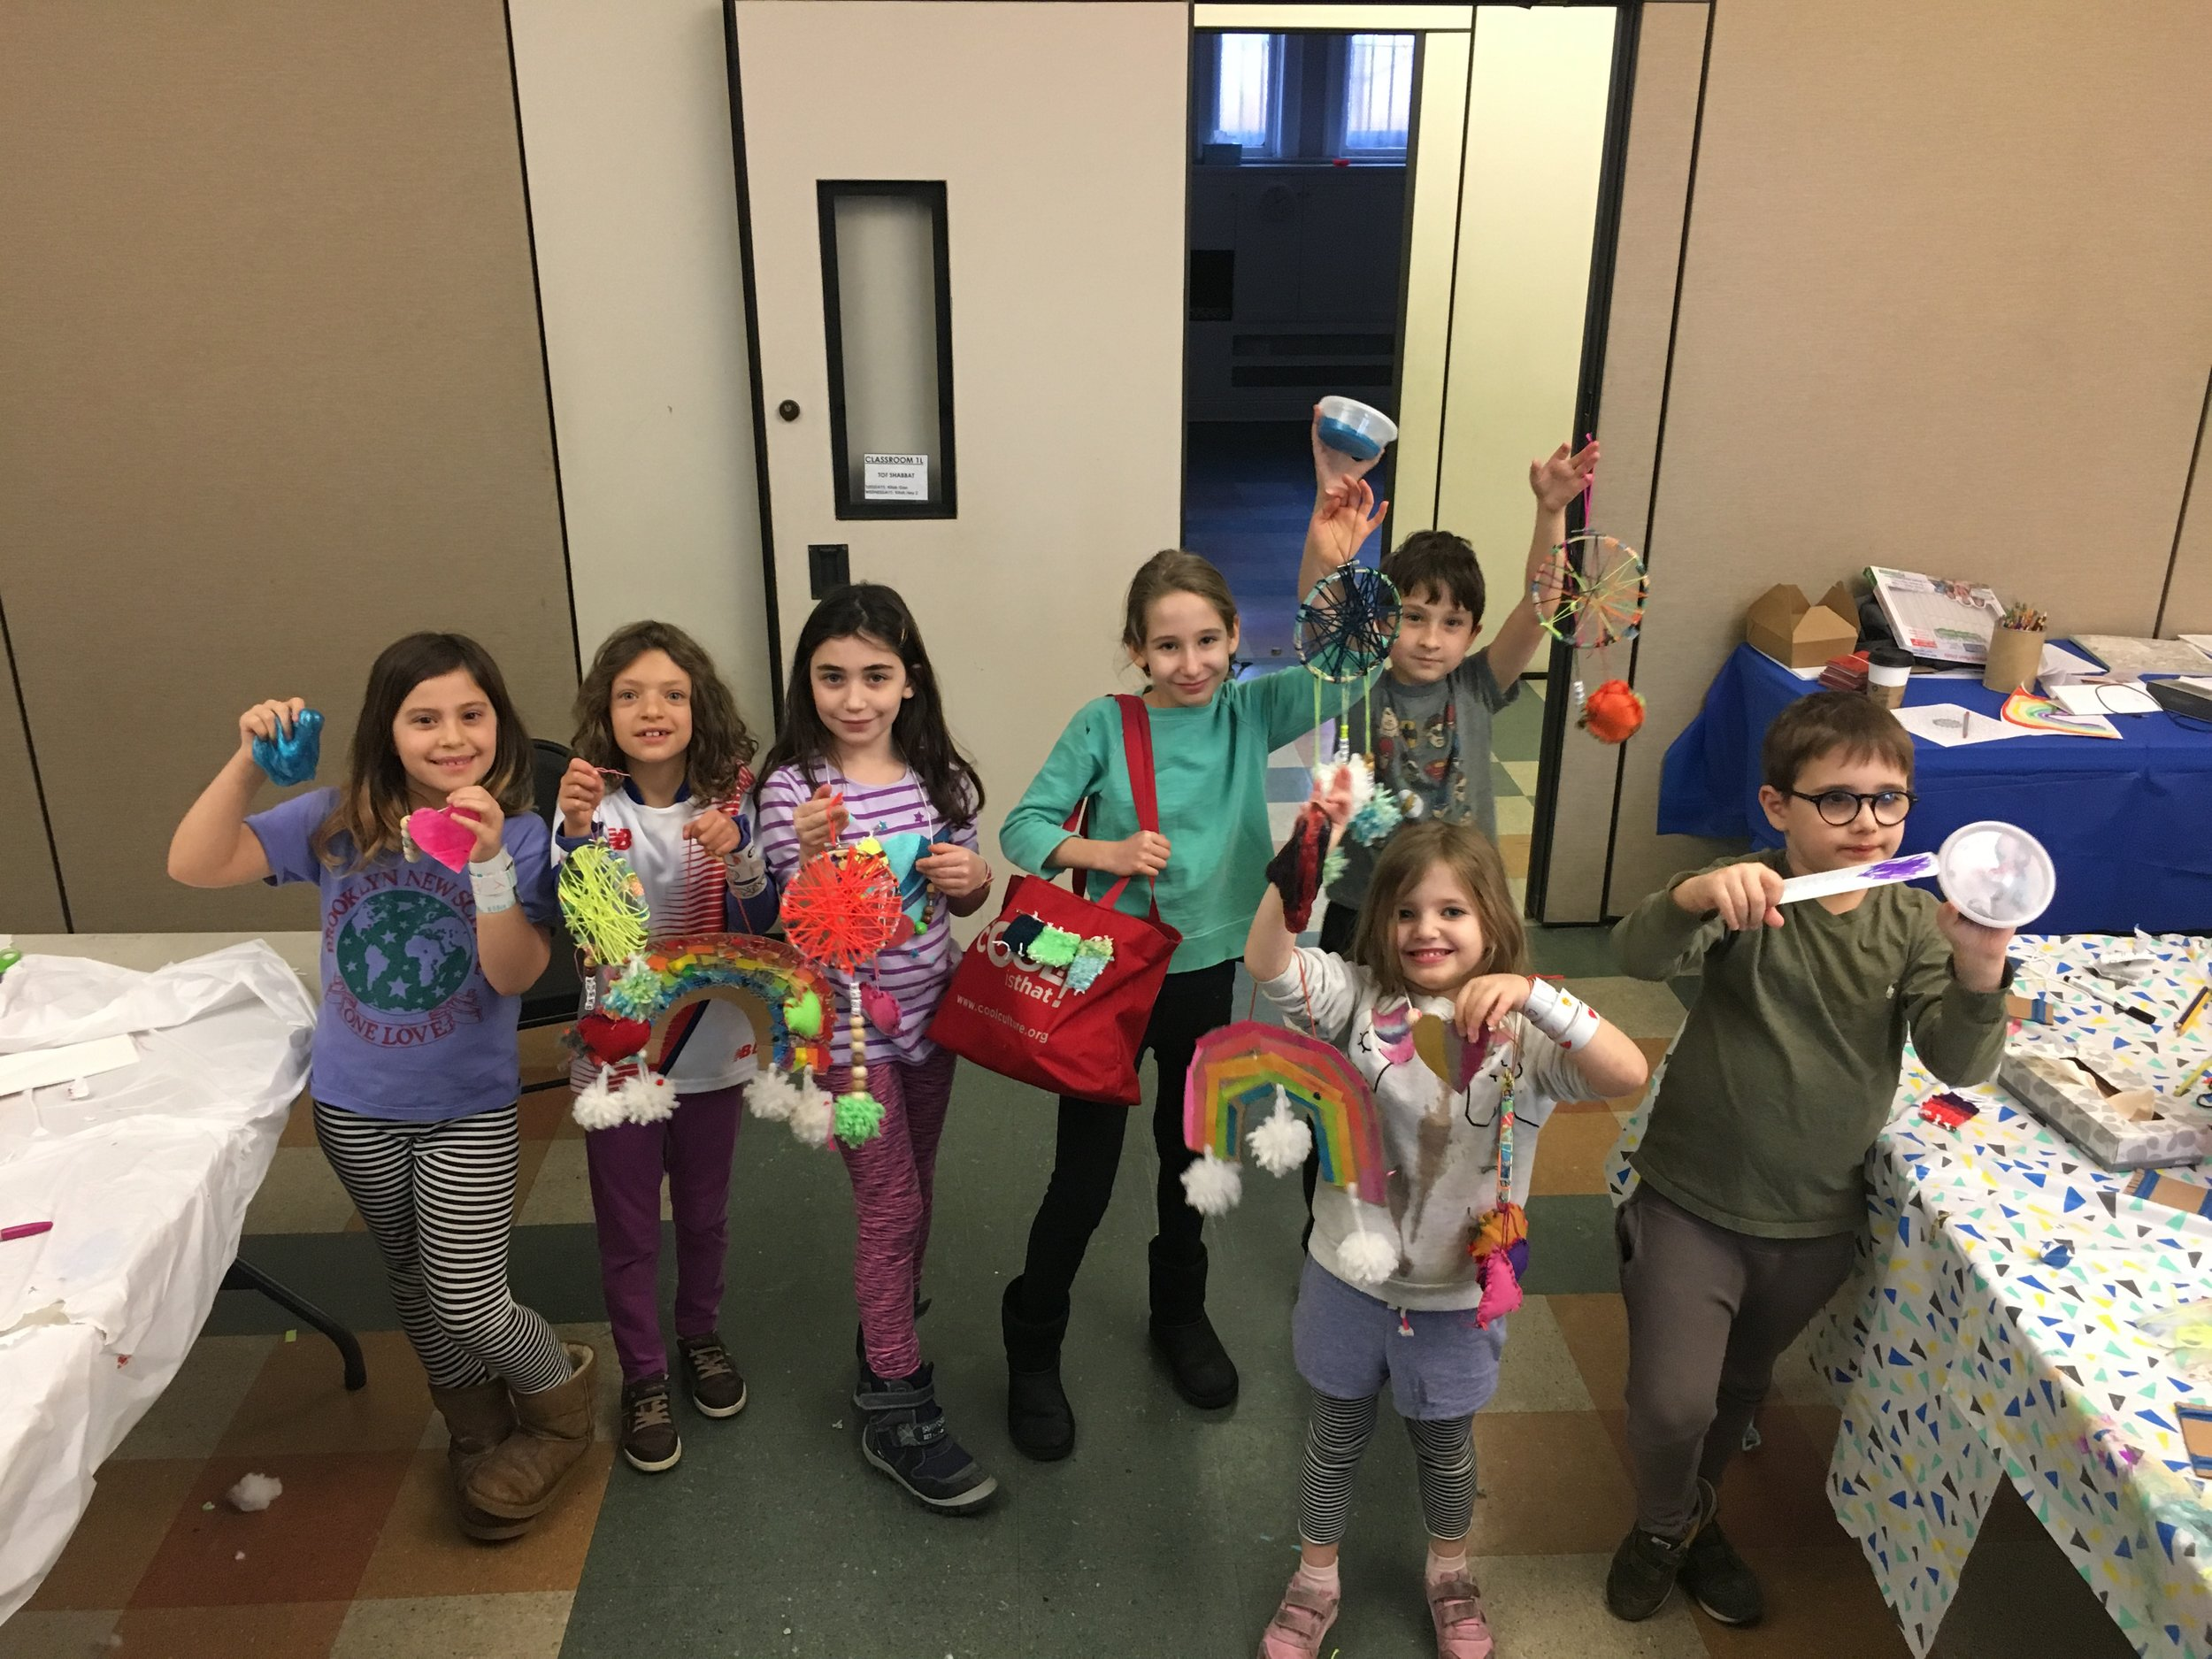 President's Week Camp - Join us Tuesday, February 20 - Friday, February 23 for four jam-packed days of winter crafting! Sign up for the full week or for individual days.Where? Kane Street Synagogue (236 Kane Street)When? 2/20 - 2/23, 9 am - 3 pm dailyWho? Ages 5-11How? To register, email BrooklynKidsCrafts@gmail.com